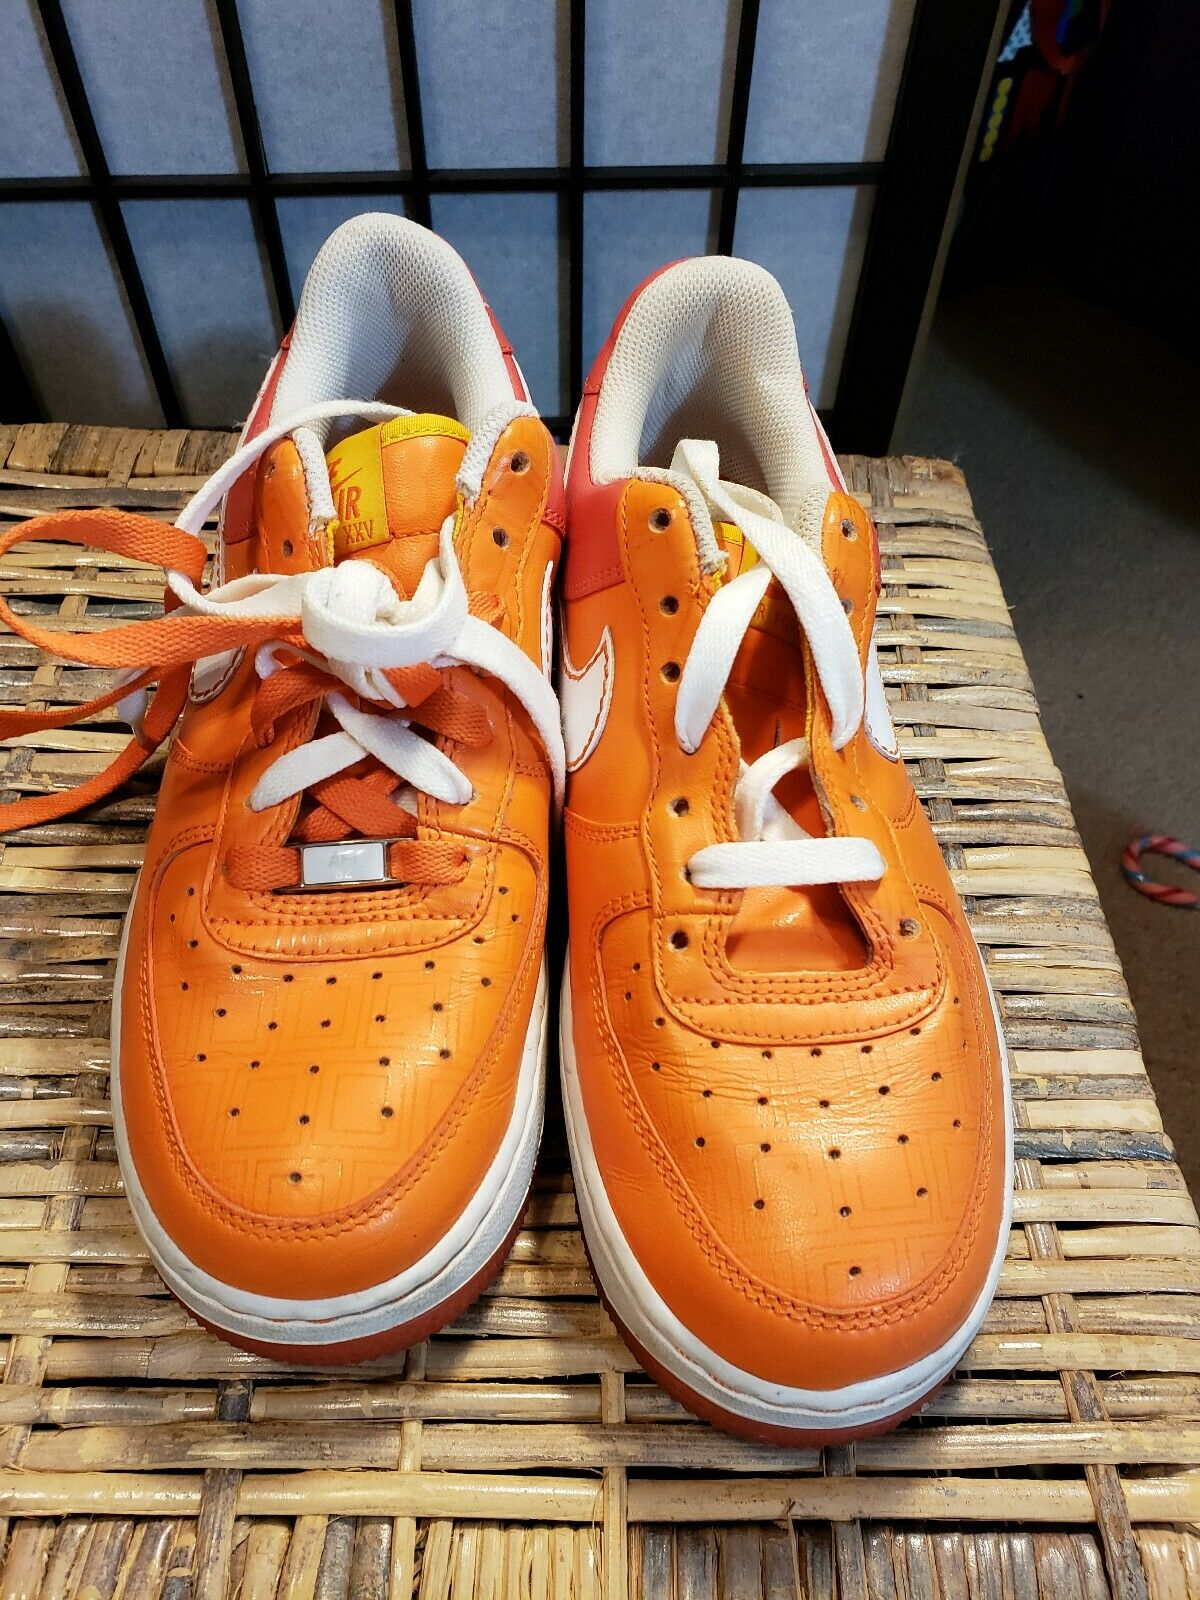 Nike 315115-811 Air Force 1 2007 2007 2007 orange Leather Basketball shoes Women's 7.5 6ad094